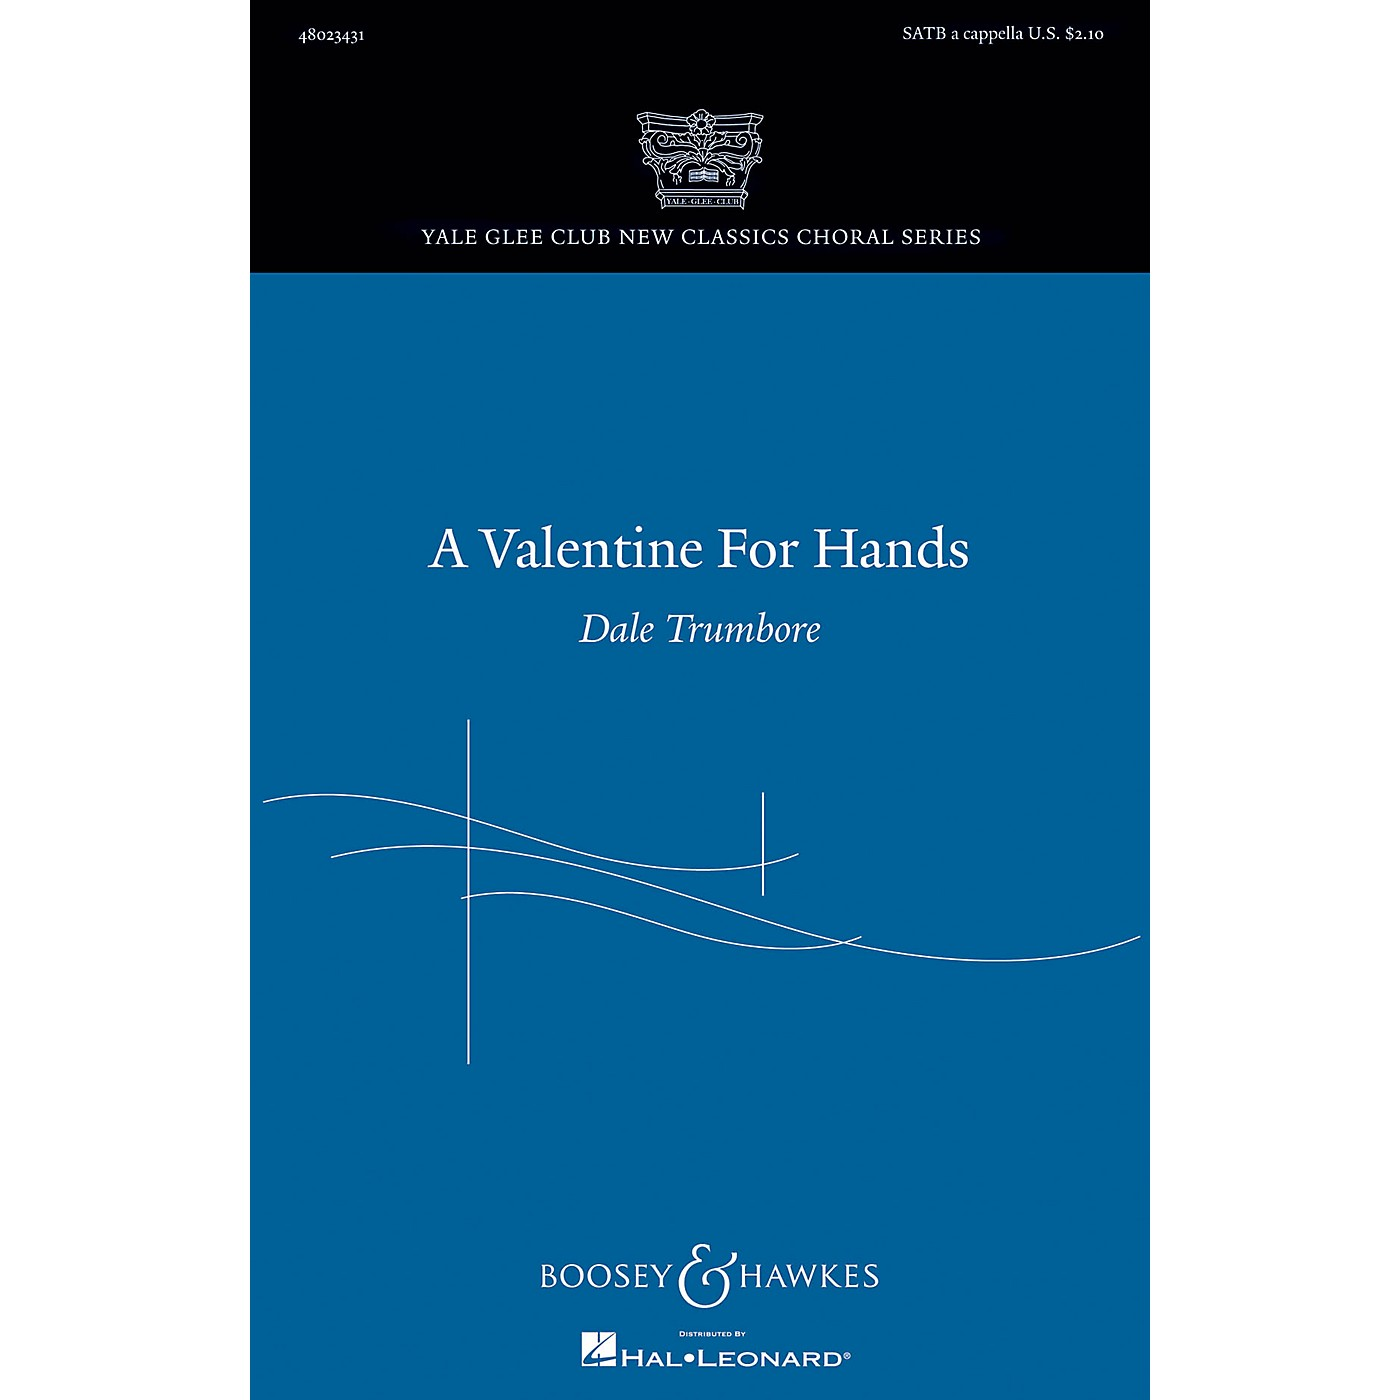 Boosey and Hawkes A Valentine for Hands (Yale Glee Club New Classic Choral Series) SATB a cappella by Dale Trumbore thumbnail